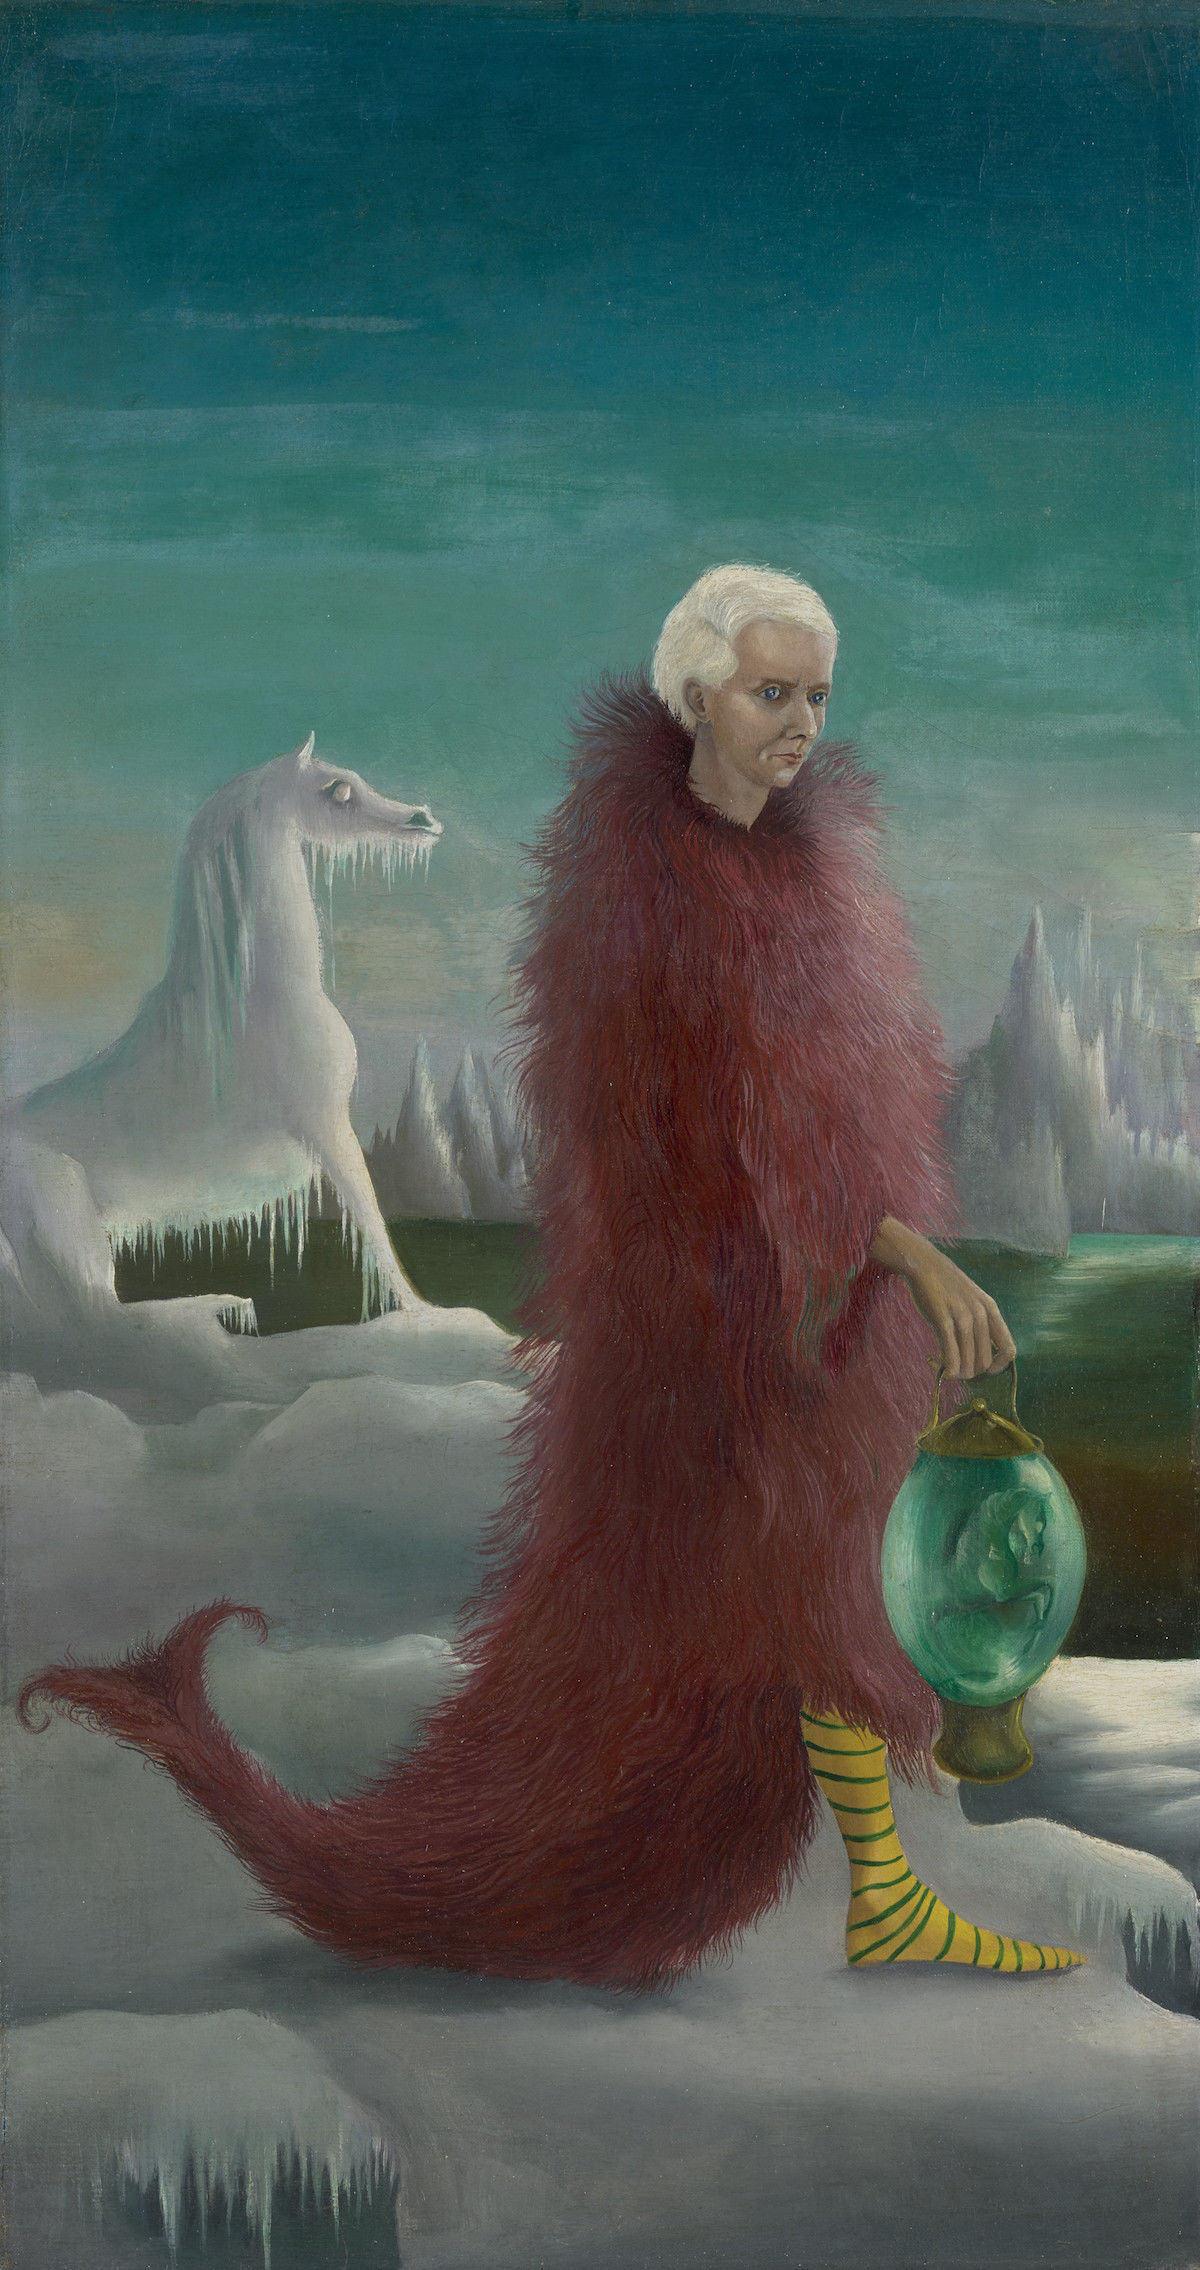 Leonora Carrington, Portrait of Max Ernst, circa 1939. © The Estate of Leonora Carrington, DACS, 2018. Courtesy of the National Galleries of Scotland.